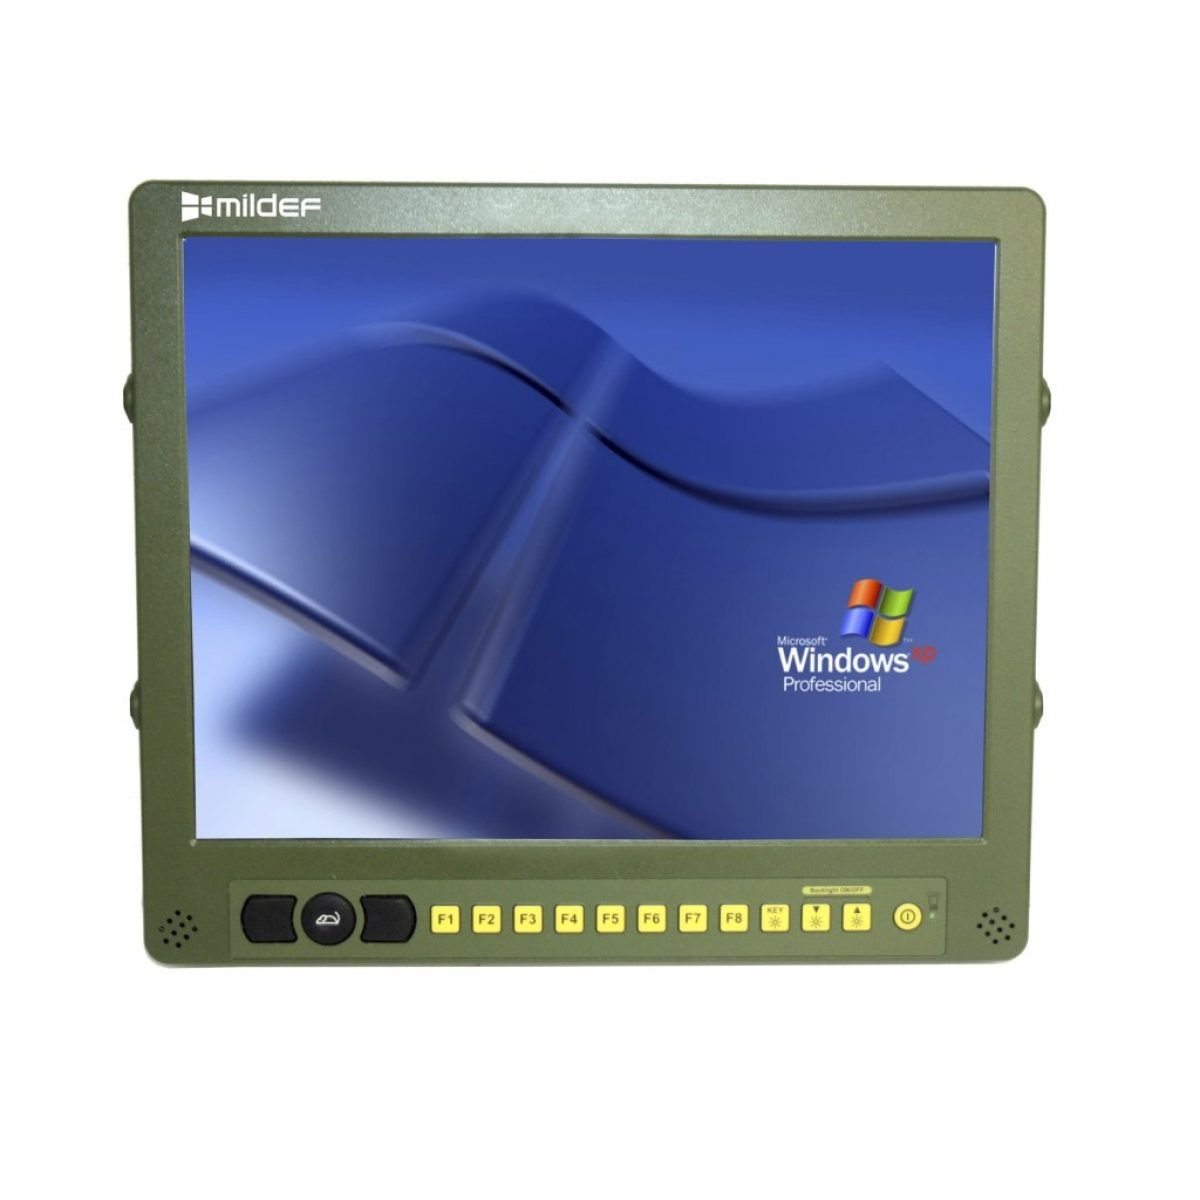 Rugged millitary display RD15 - MilDef, global supplier of